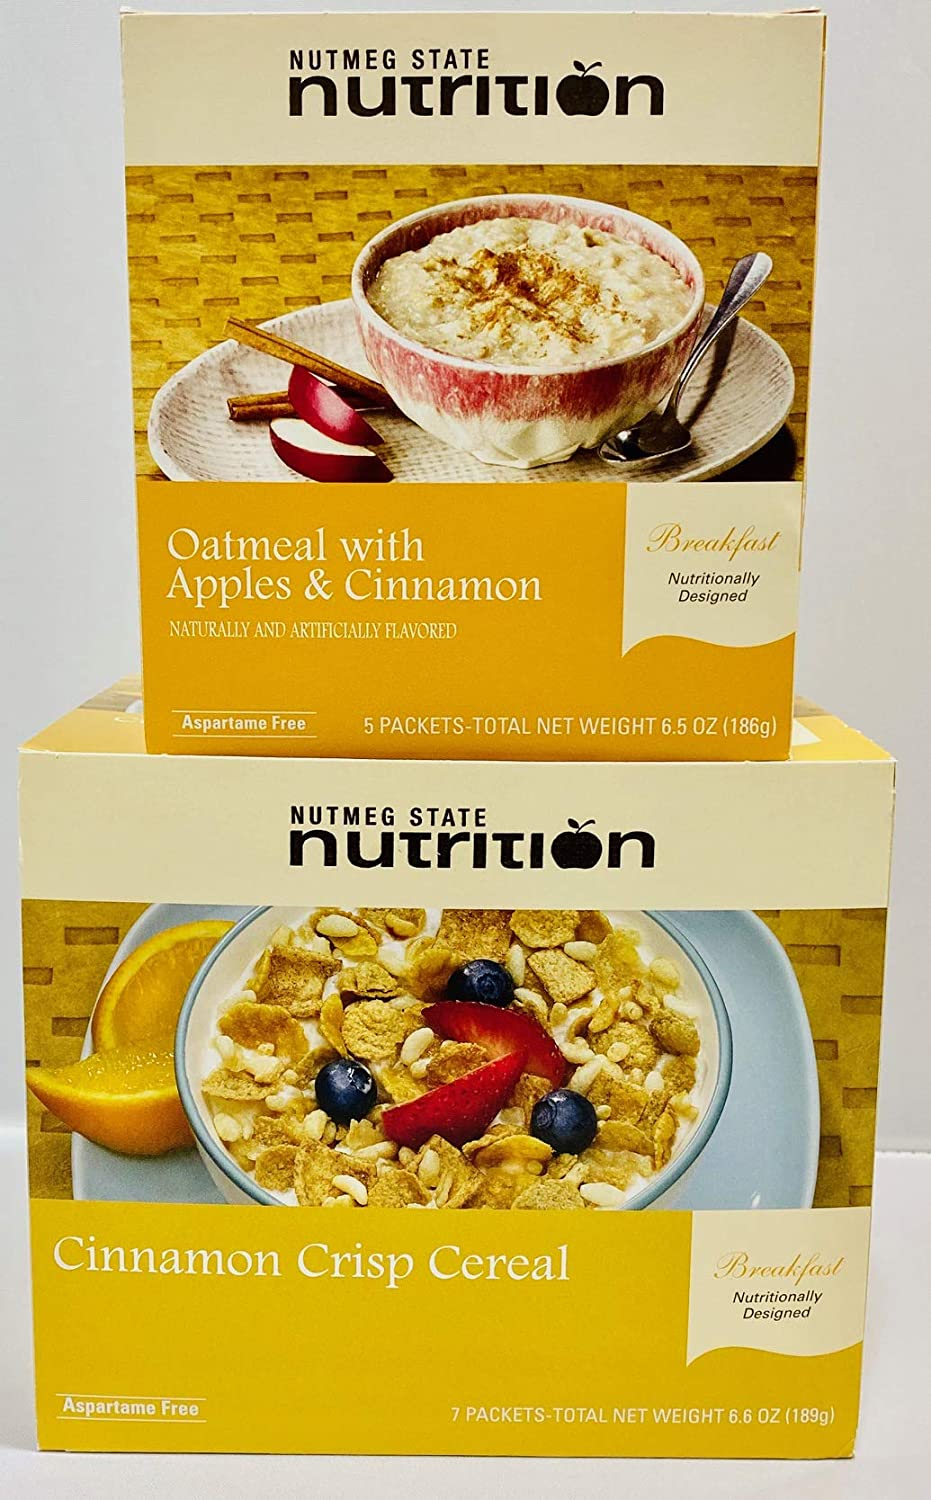 Nutmeg State Nutrition Diet high Protein Breakfast Bundle (Apple and Cinnamon Oatmeal and Cinnamon Crisp Cereal) (12 Servings) - | Healthy Nutritious|, Low Calorie, Low Fat, Low Carb, Low Sugar